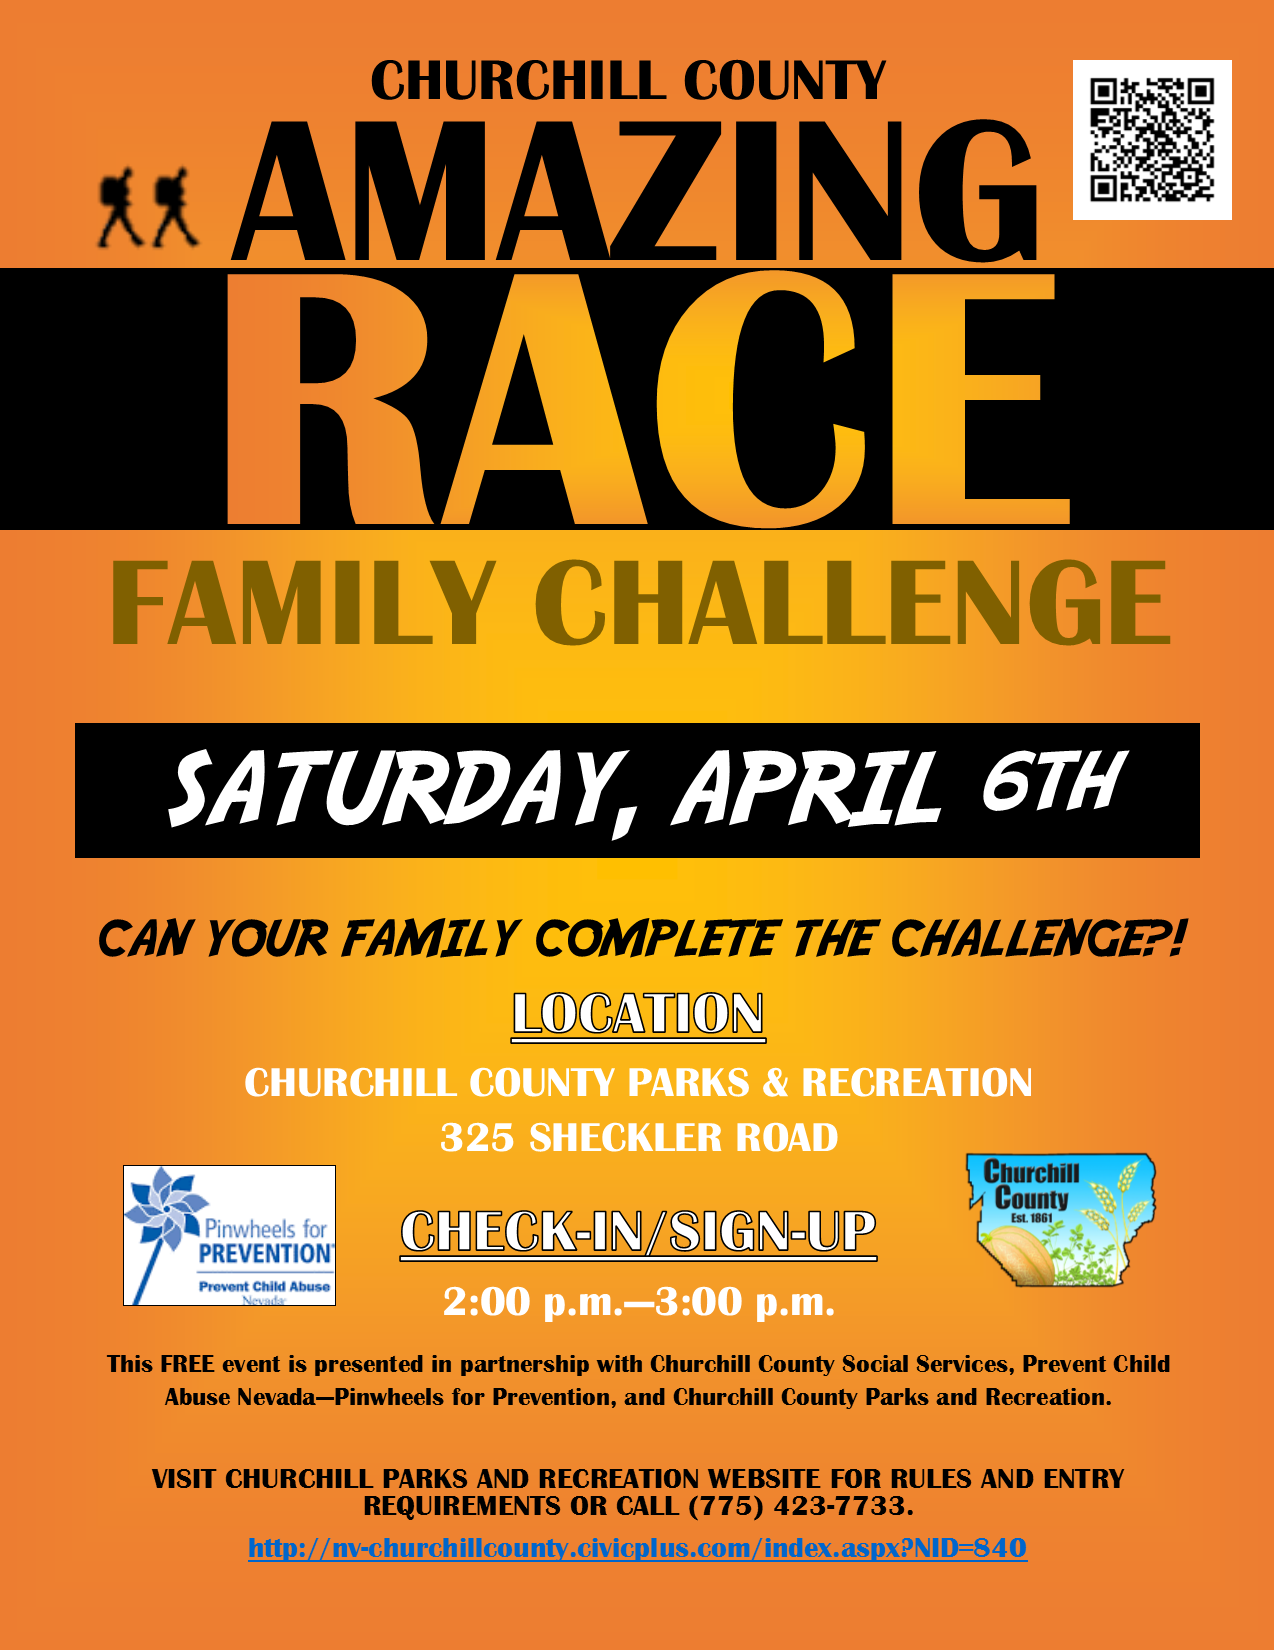 Amazing Race Family Challenge Flyer